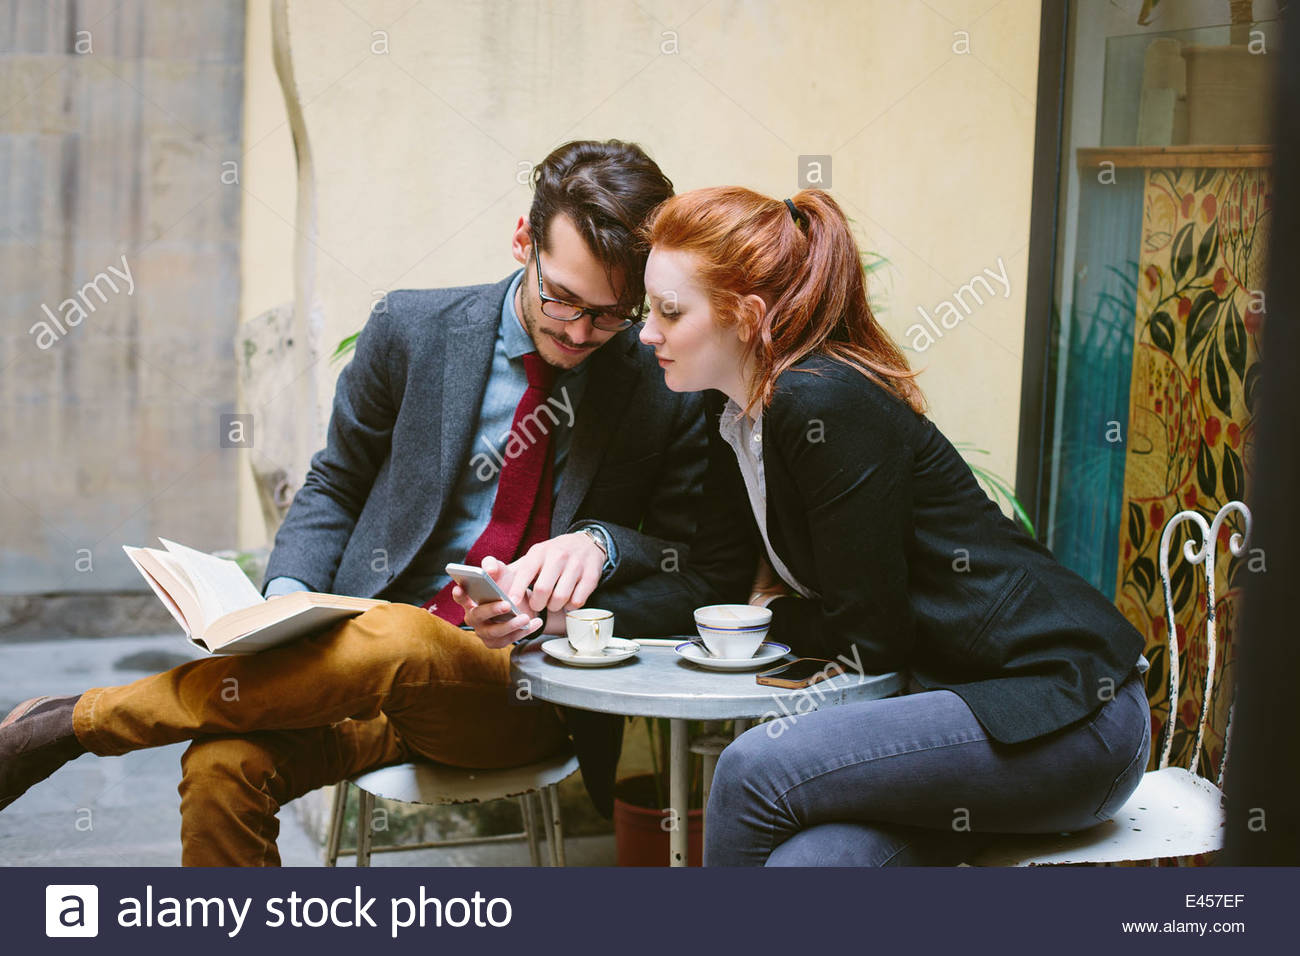 Couple sitting in cafe - Stock Image